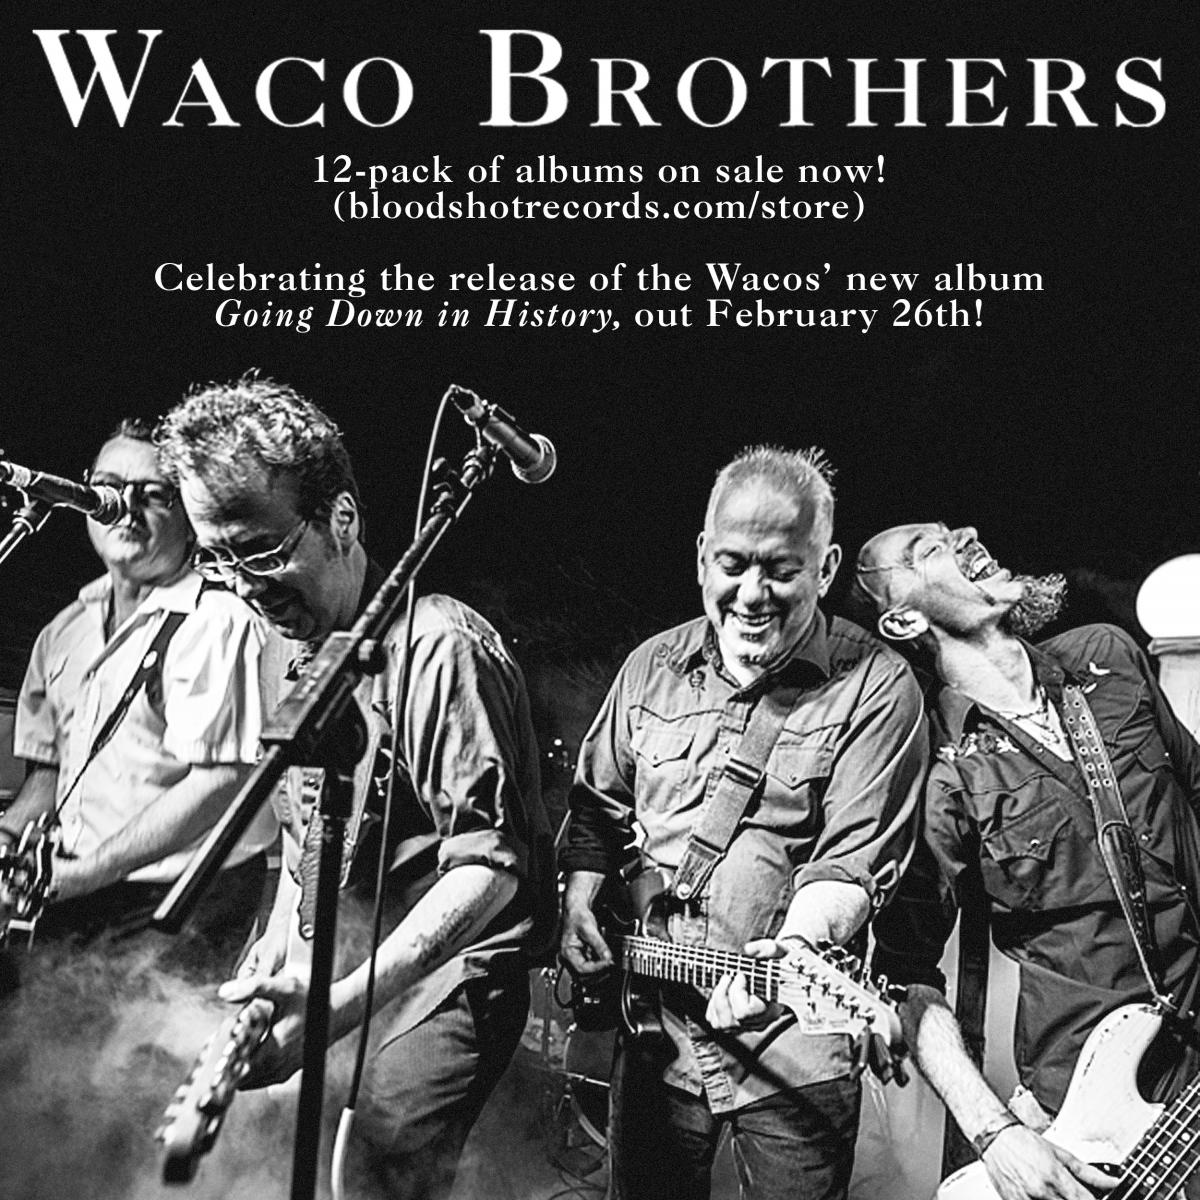 Waco Brothers 12 Pack Sale Bloodshot Records